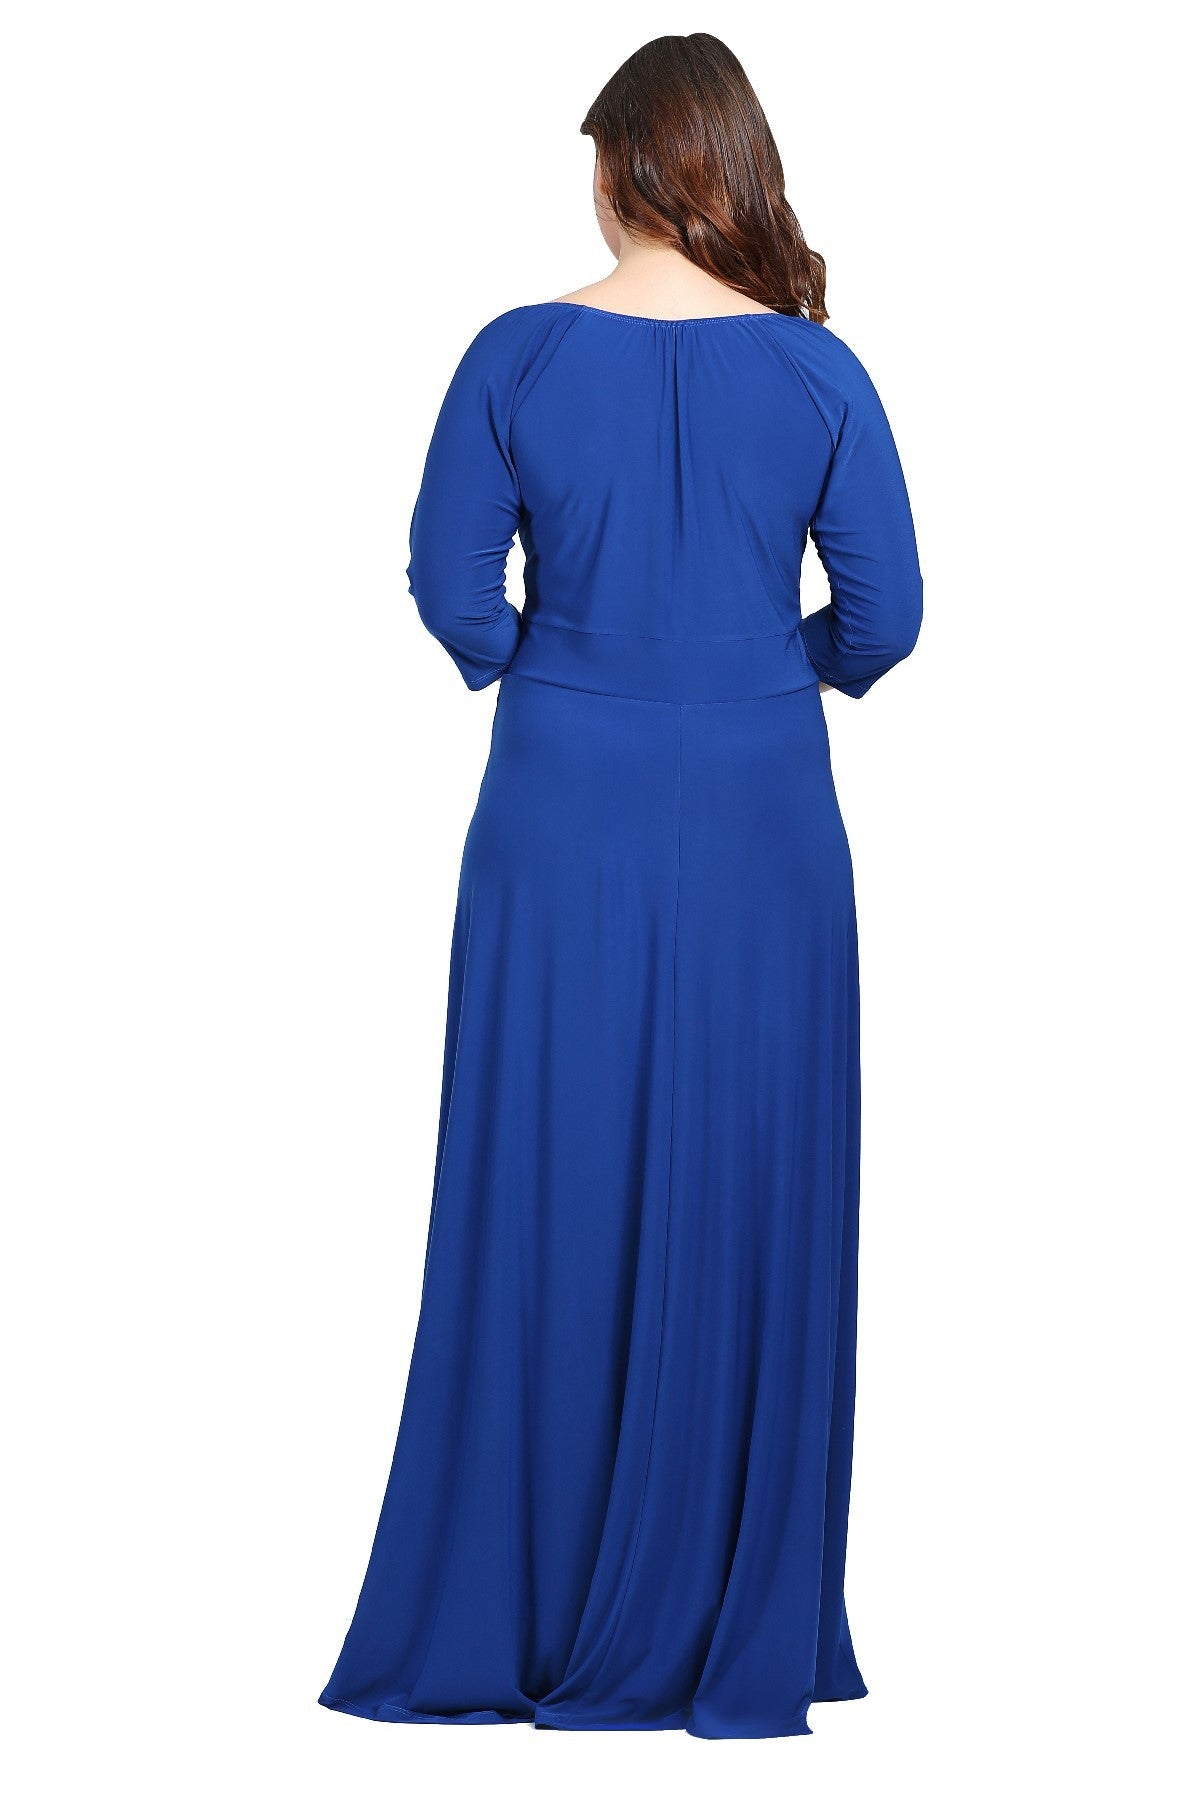 Women's Oversize Evening Dress